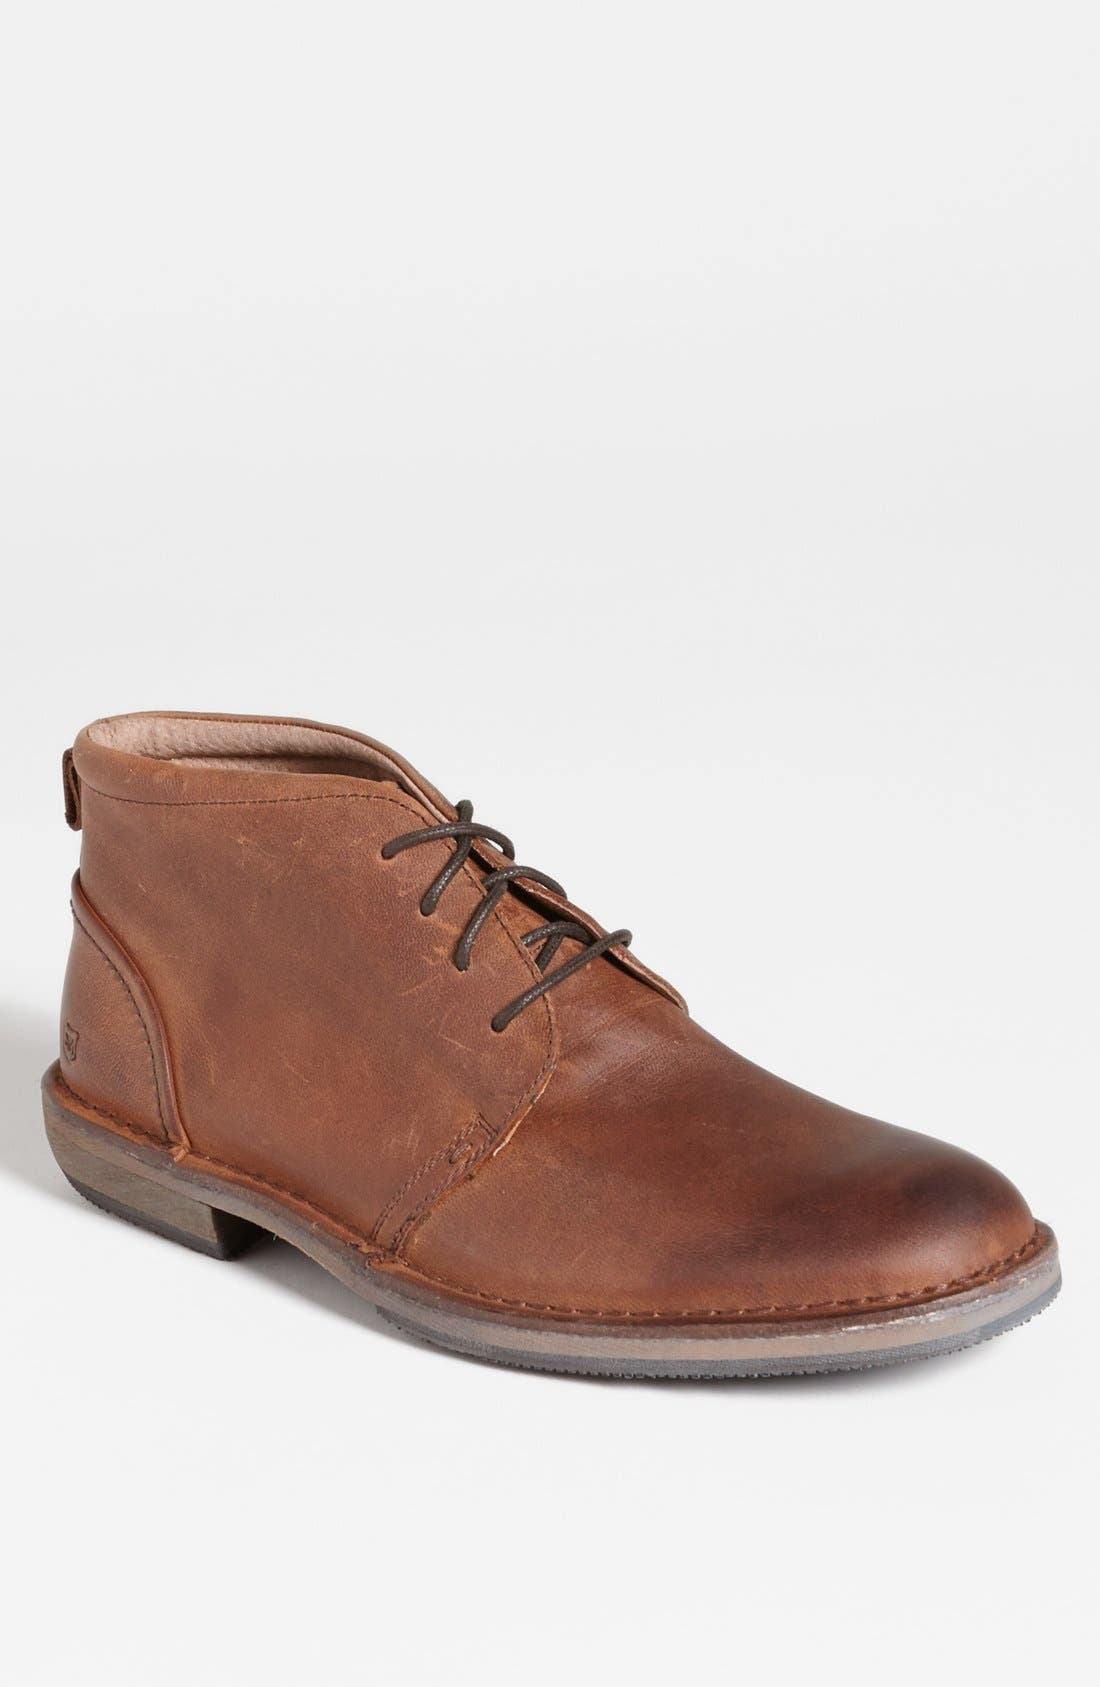 Main Image - Andrew Marc 'Greenwich' Chukka Boot (Men)